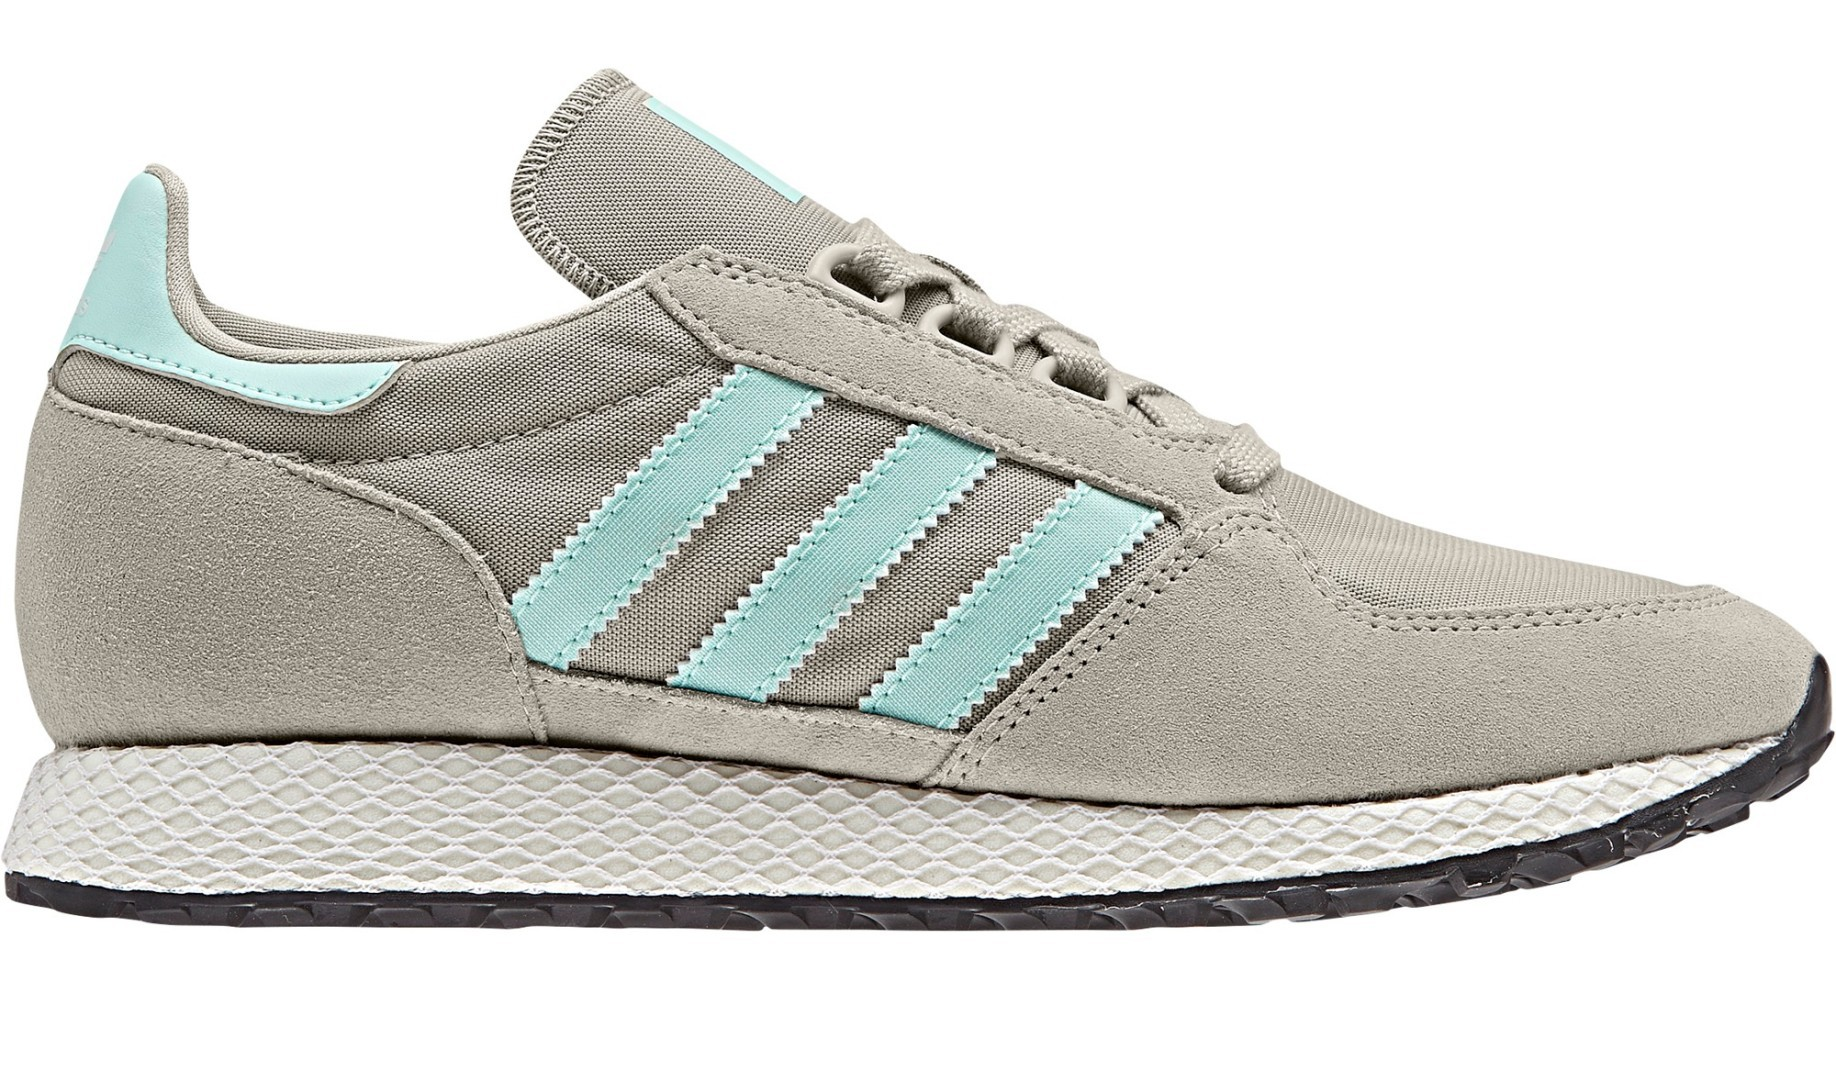 on sale e7e75 1753c Scarpe Donna Forest Grove W colore Grigio Verde - Adidas Originals -  SportIT.com